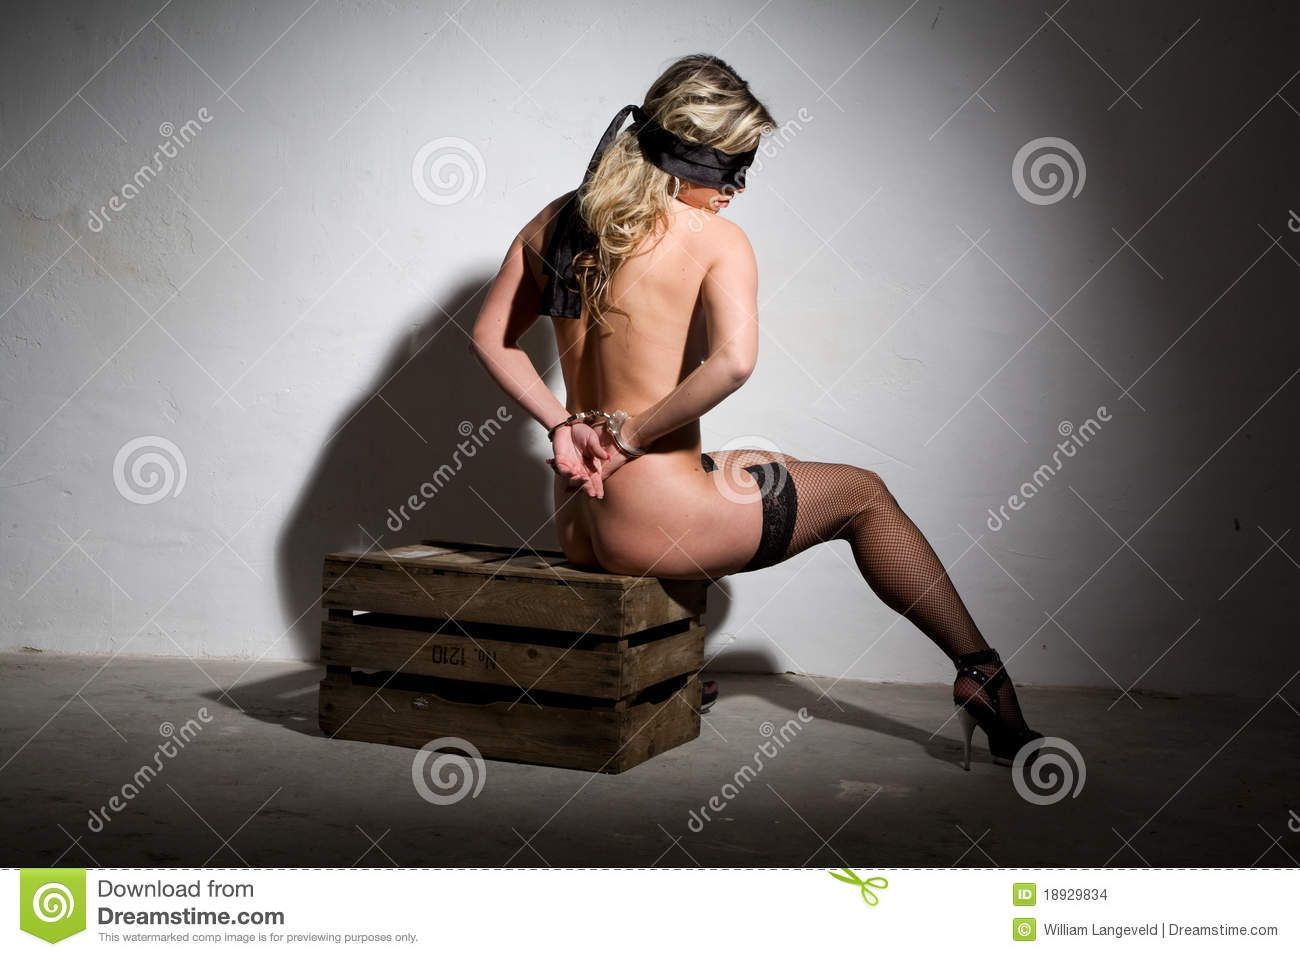 Sexy Blindfolded Nude Girl Bound In Dungeon Style Stock -2787